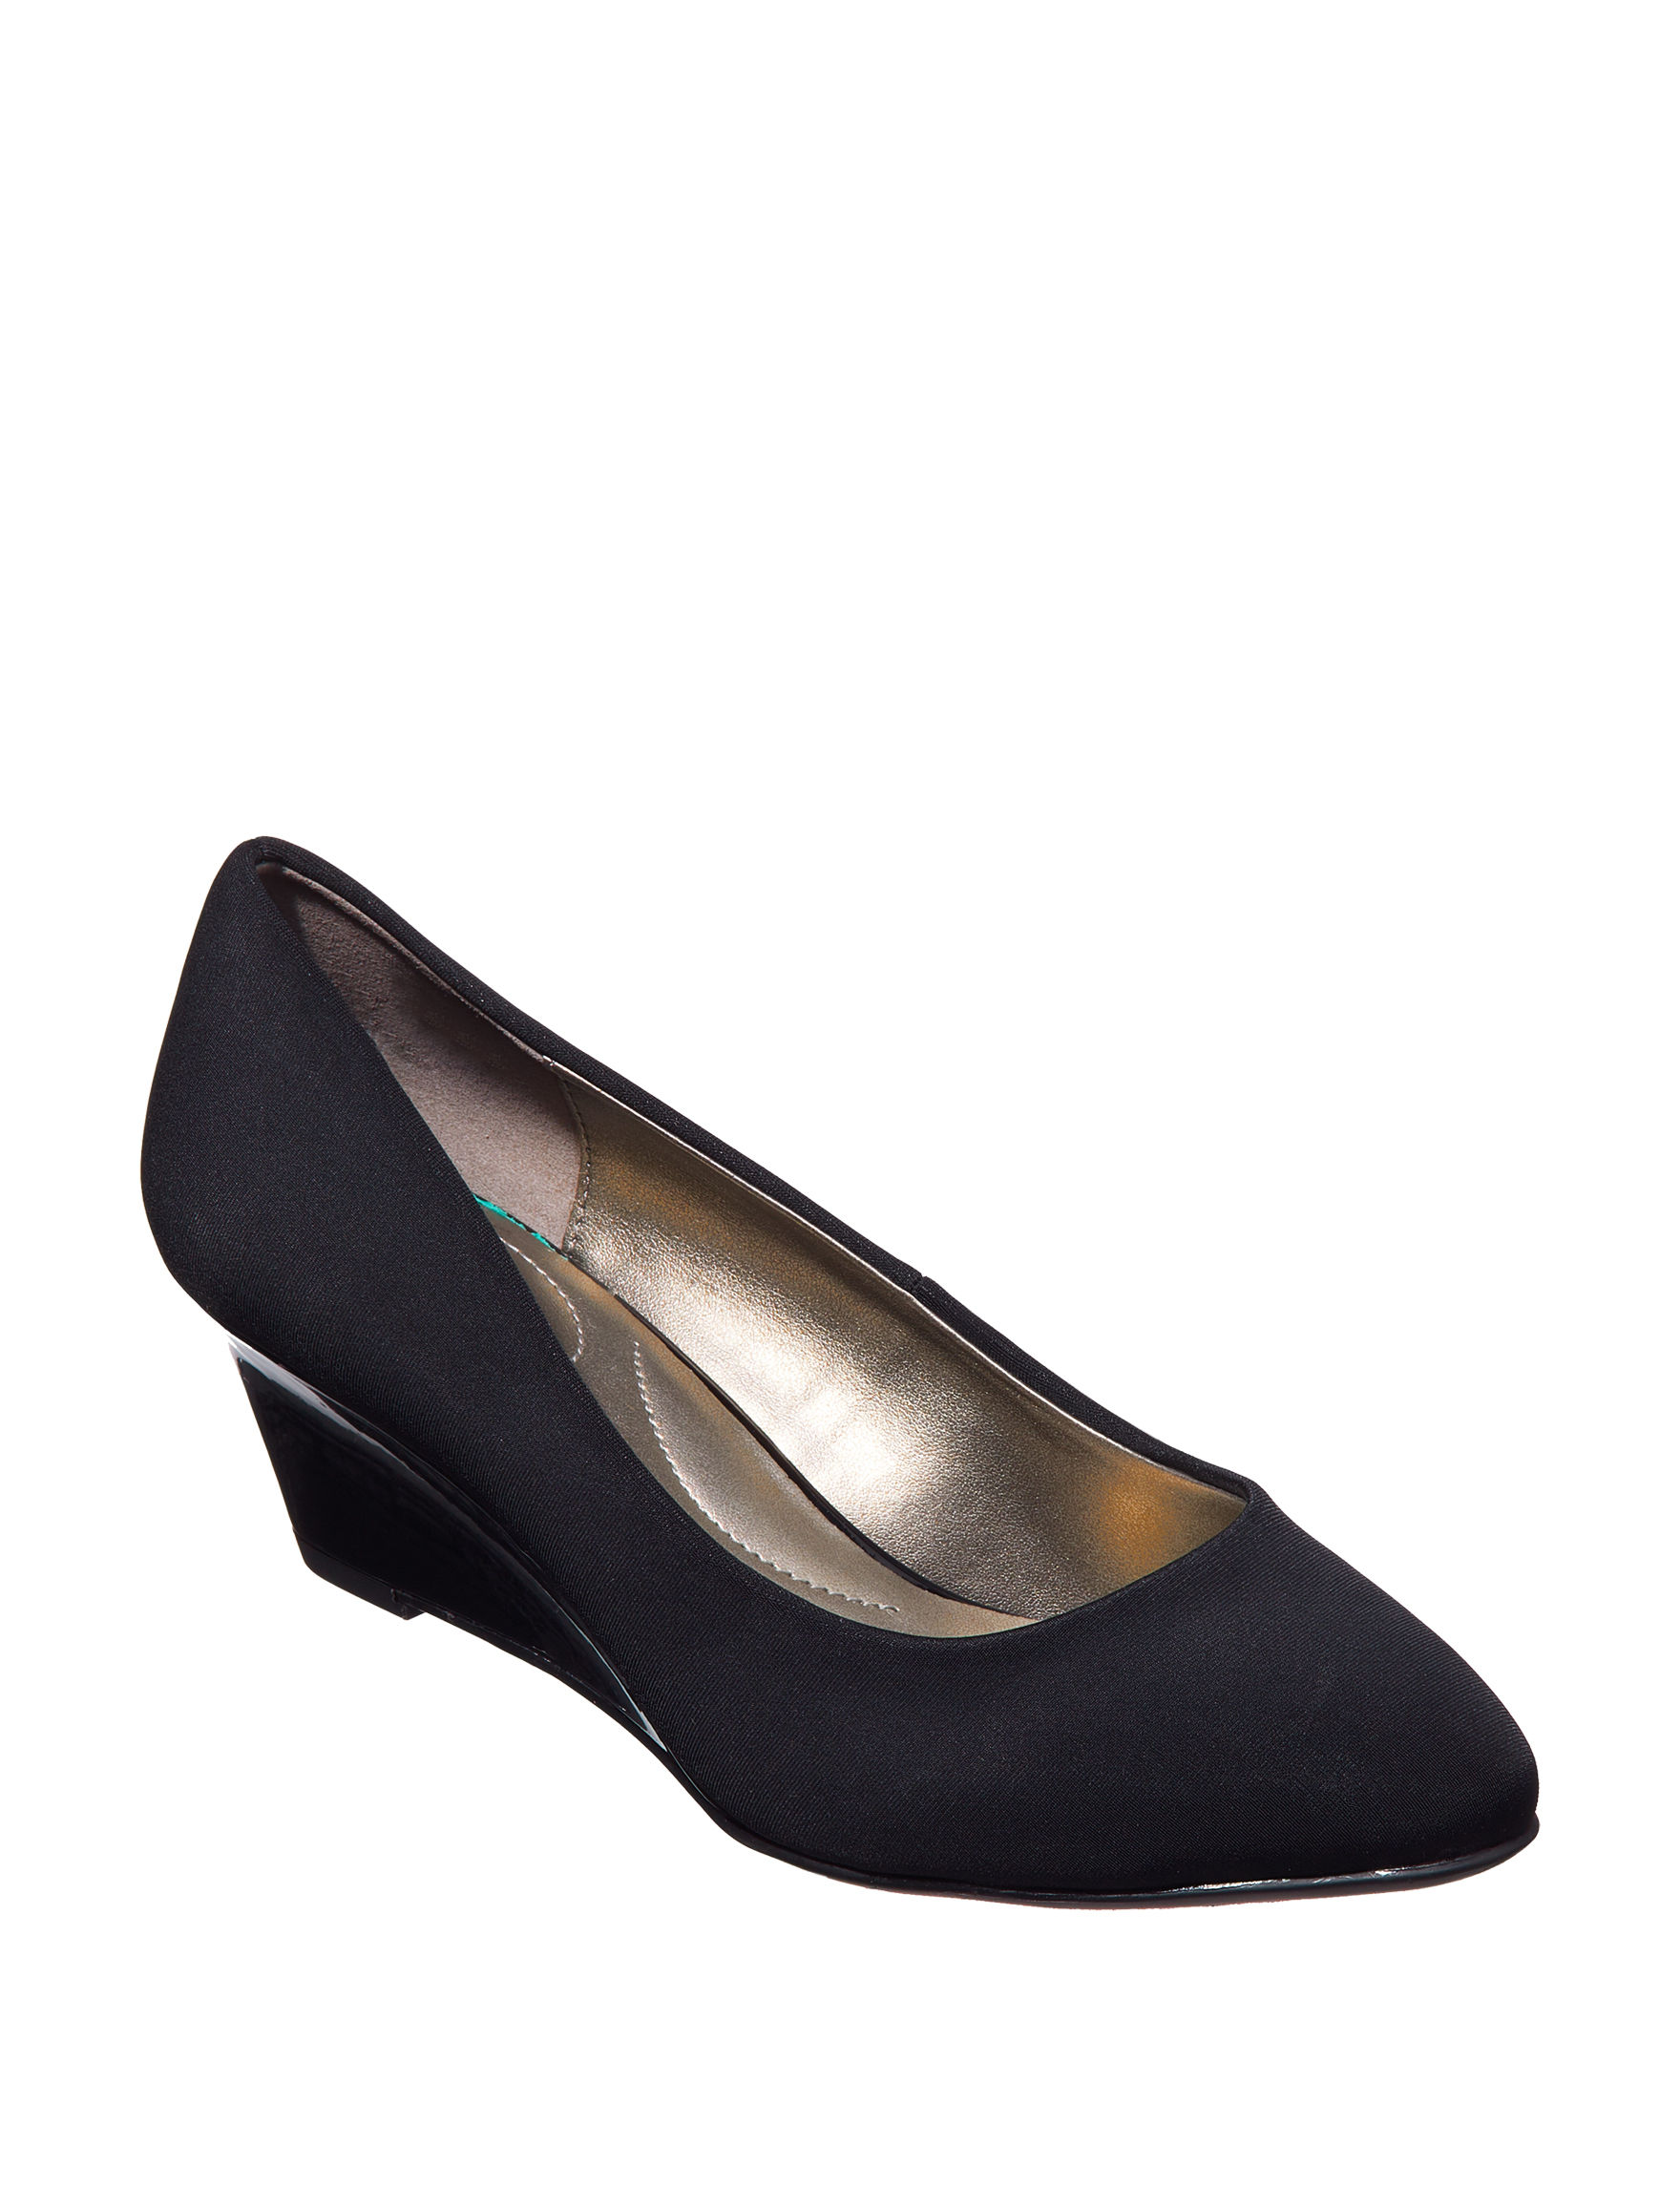 Bandolino Black Wedge Pumps